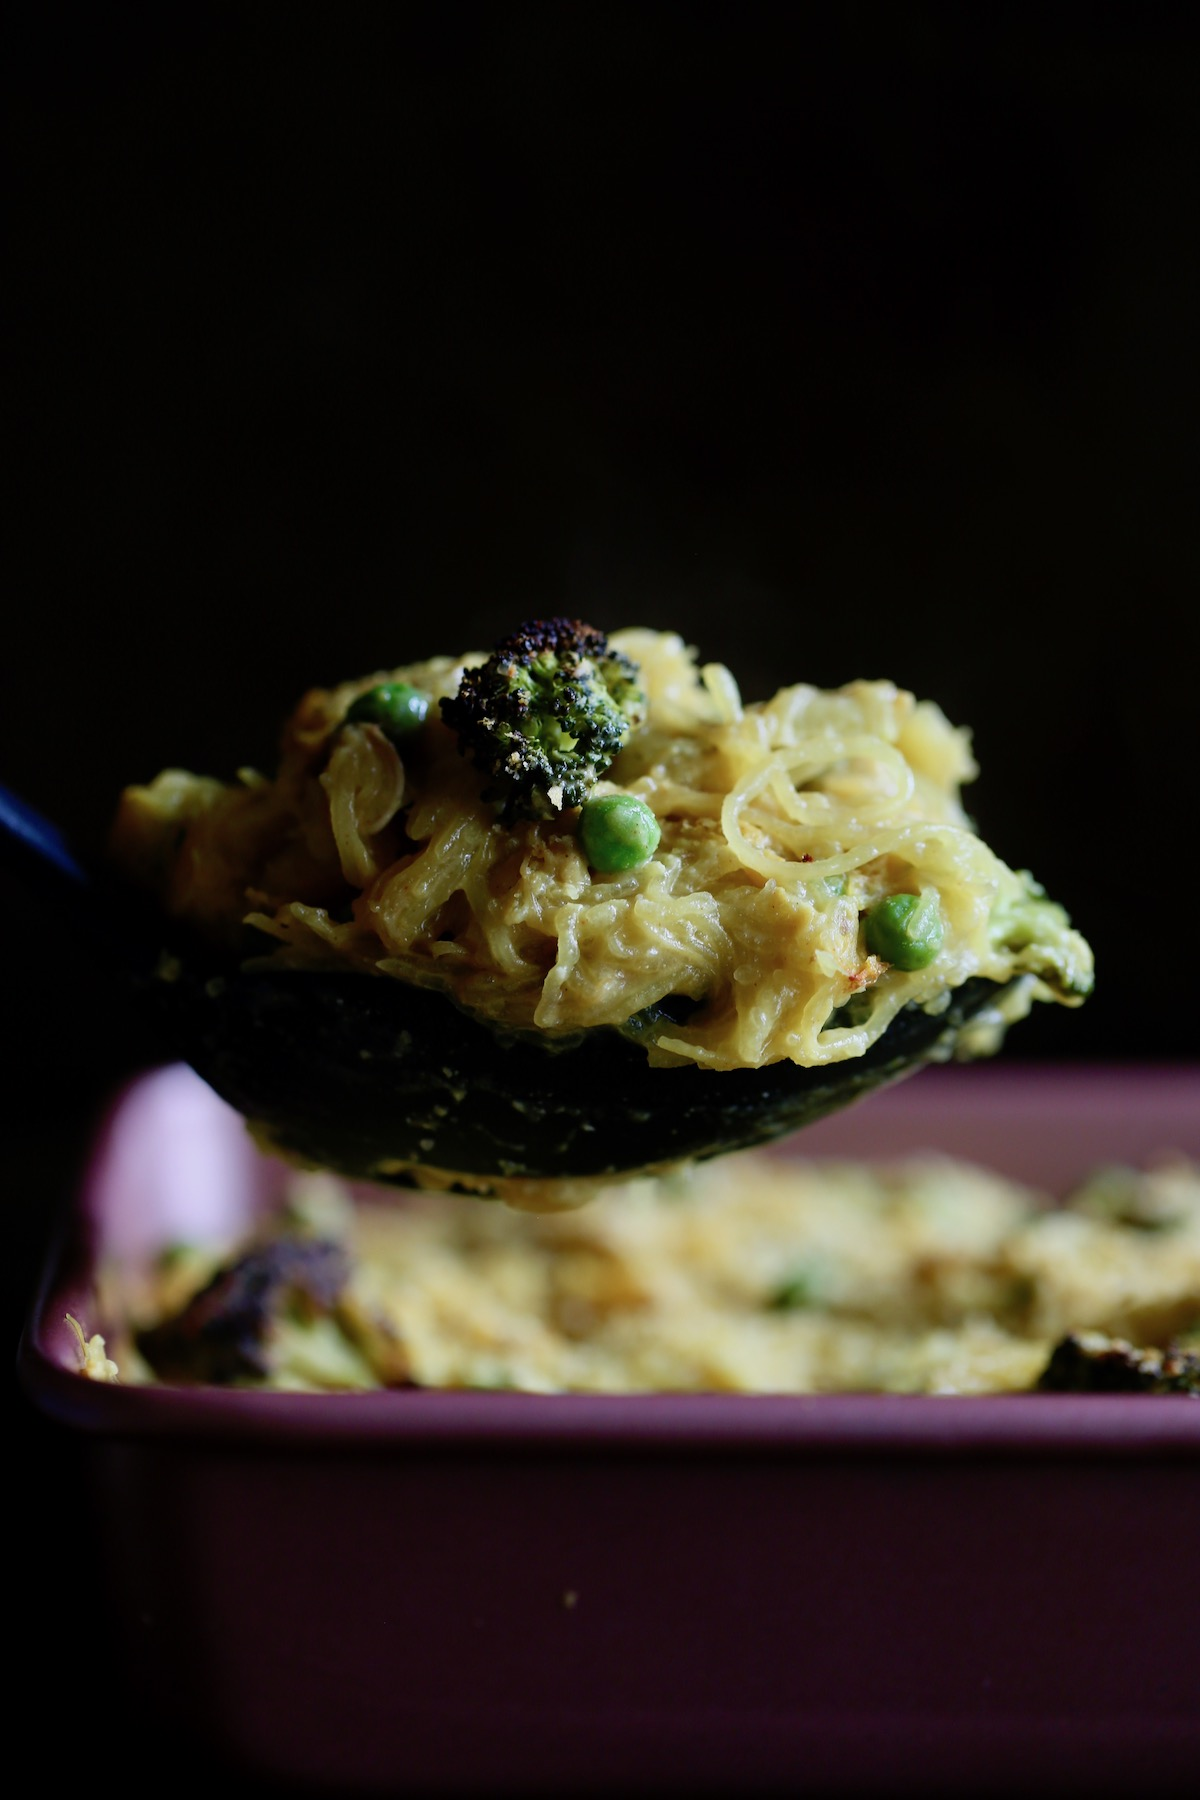 a ladle scooping cheesy vegan spaghetti squash casserole out of a baking dish